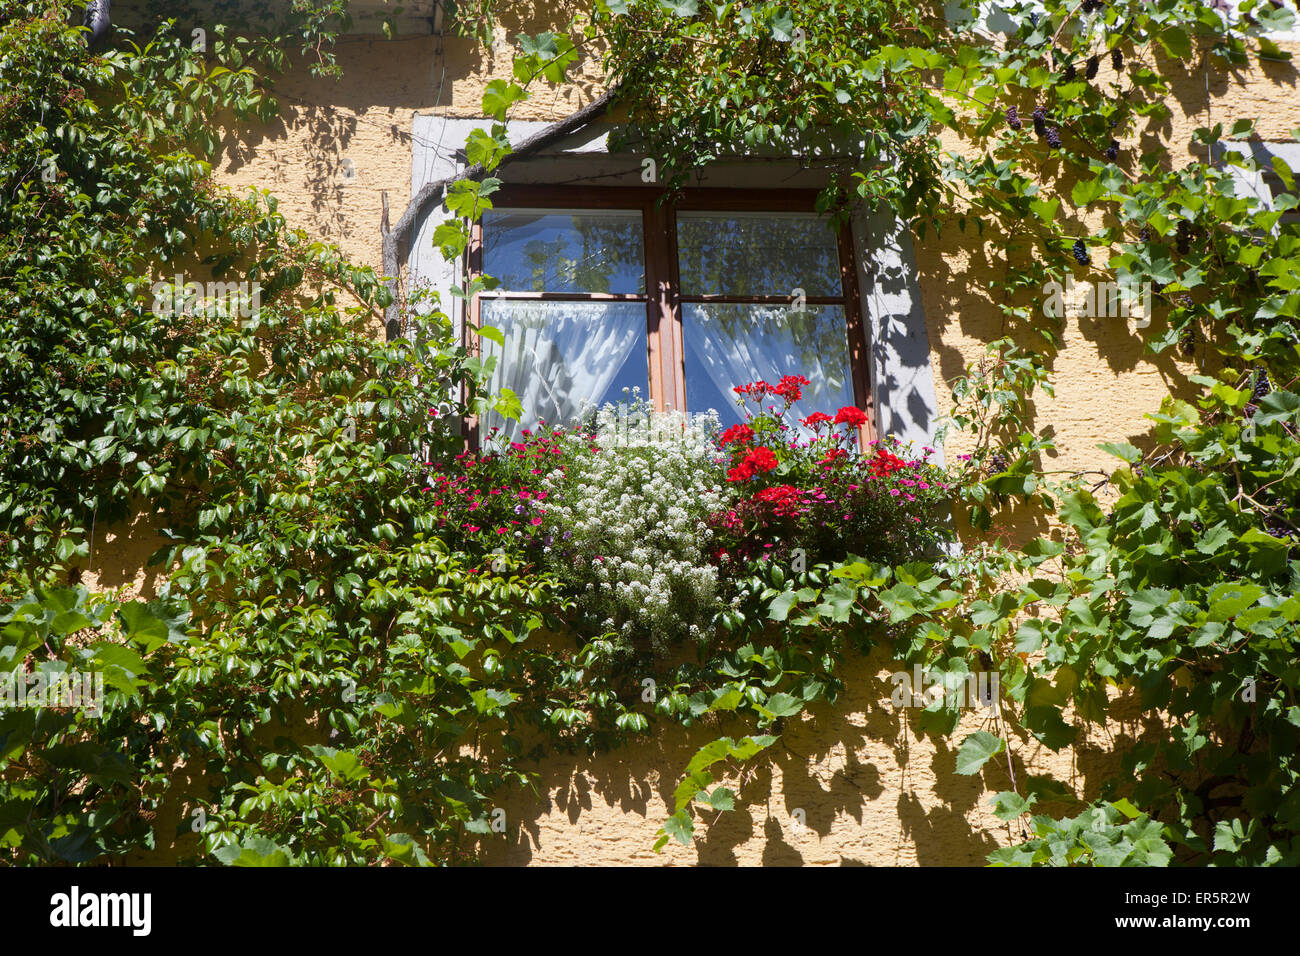 Flowers in a window box in the historical center of Meersburg, Lake Constance, Swabia, Baden-Wuerttemberg, Germany, - Stock Image